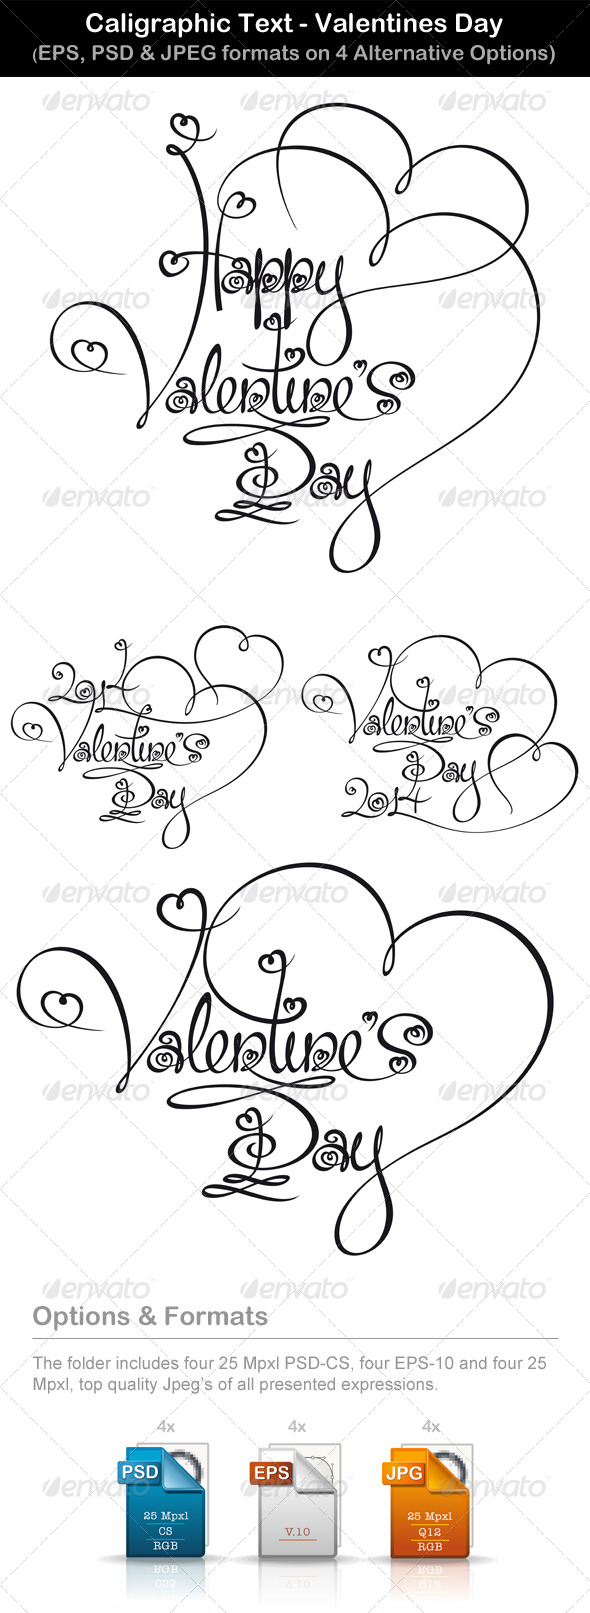 GraphicRiver Caligraphic Text Valentines Day 6677820